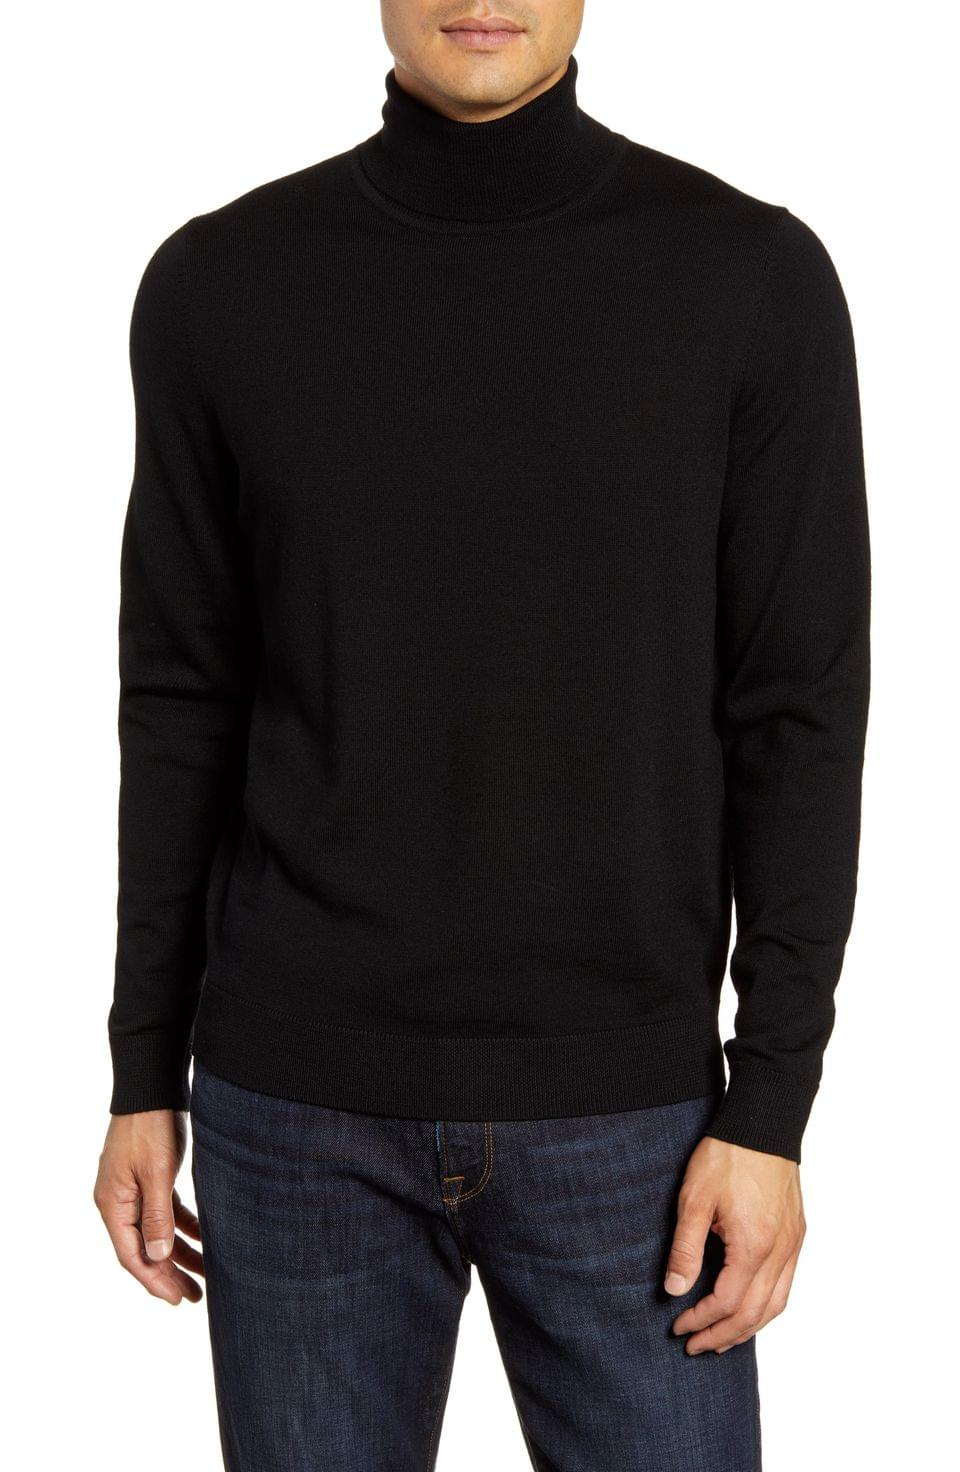 Men's Nordstrom Men's Shop Merino Wool Turtleneck Sweater